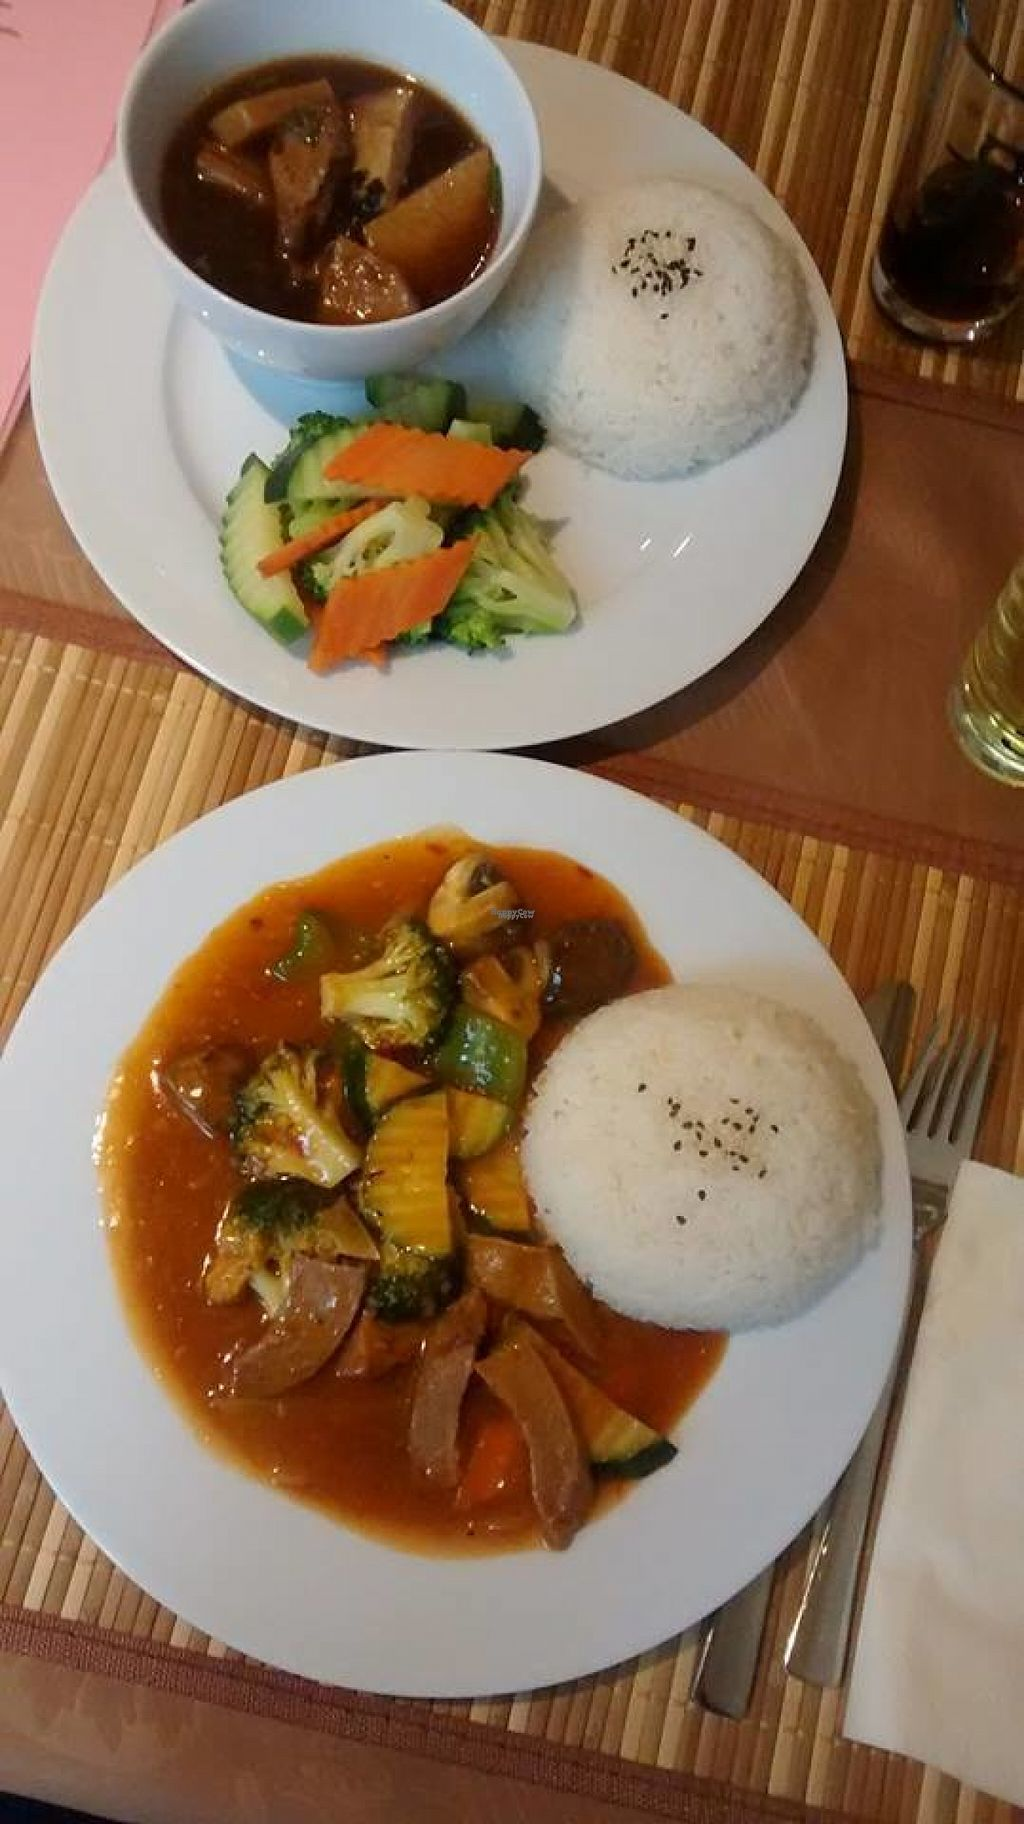 """Photo of Loving Hut - St Georg  by <a href=""""/members/profile/BlisterBlue"""">BlisterBlue</a> <br/>""""Fish"""" stew on top and lemongrass spiced soy proteins at the bottom. Both really good!! <br/> November 2, 2016  - <a href='/contact/abuse/image/69030/186108'>Report</a>"""